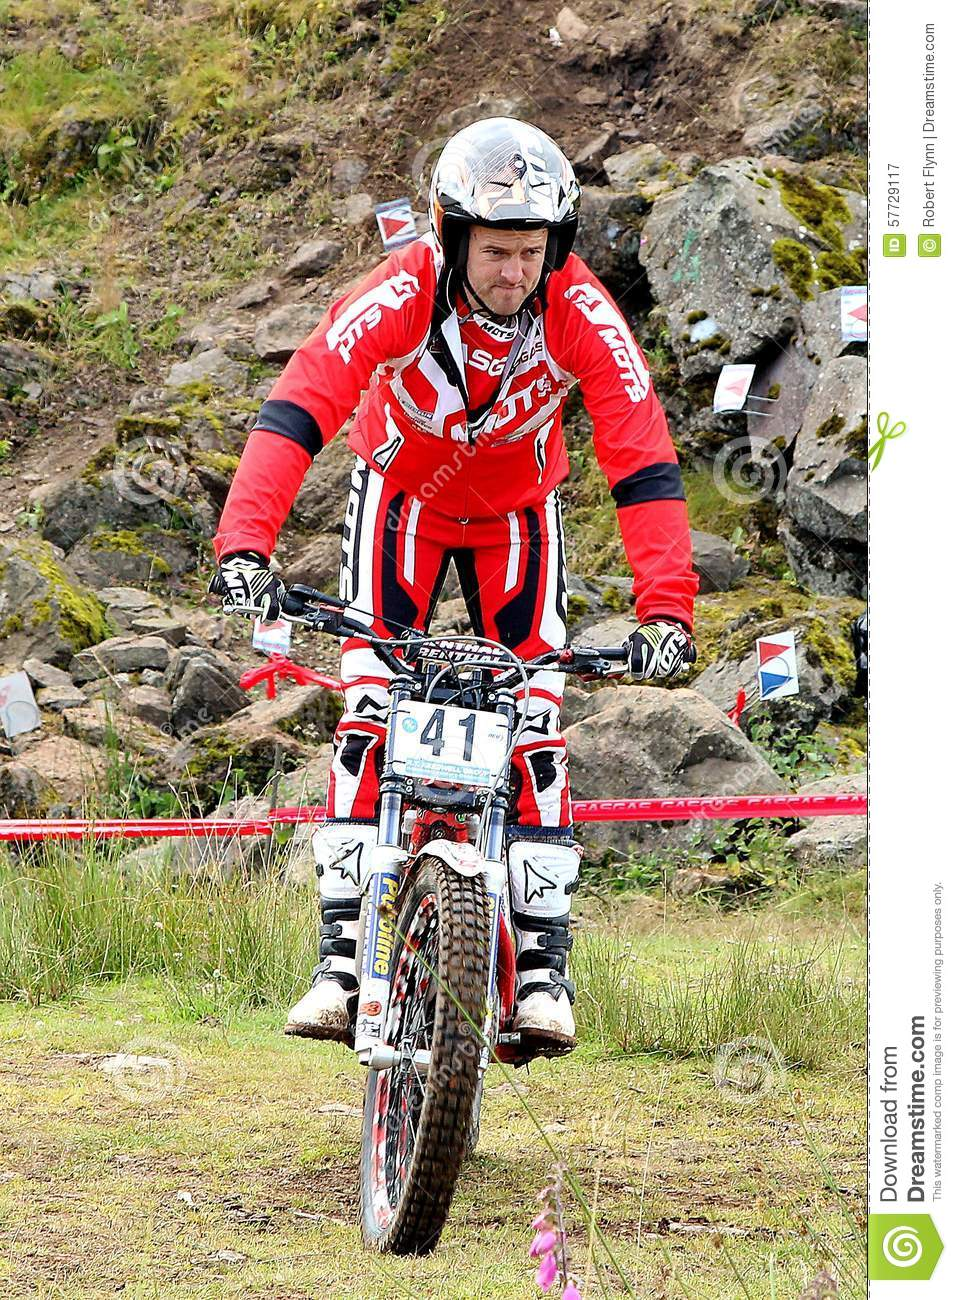 trial-motorcycle-rider-standing-bike-bri